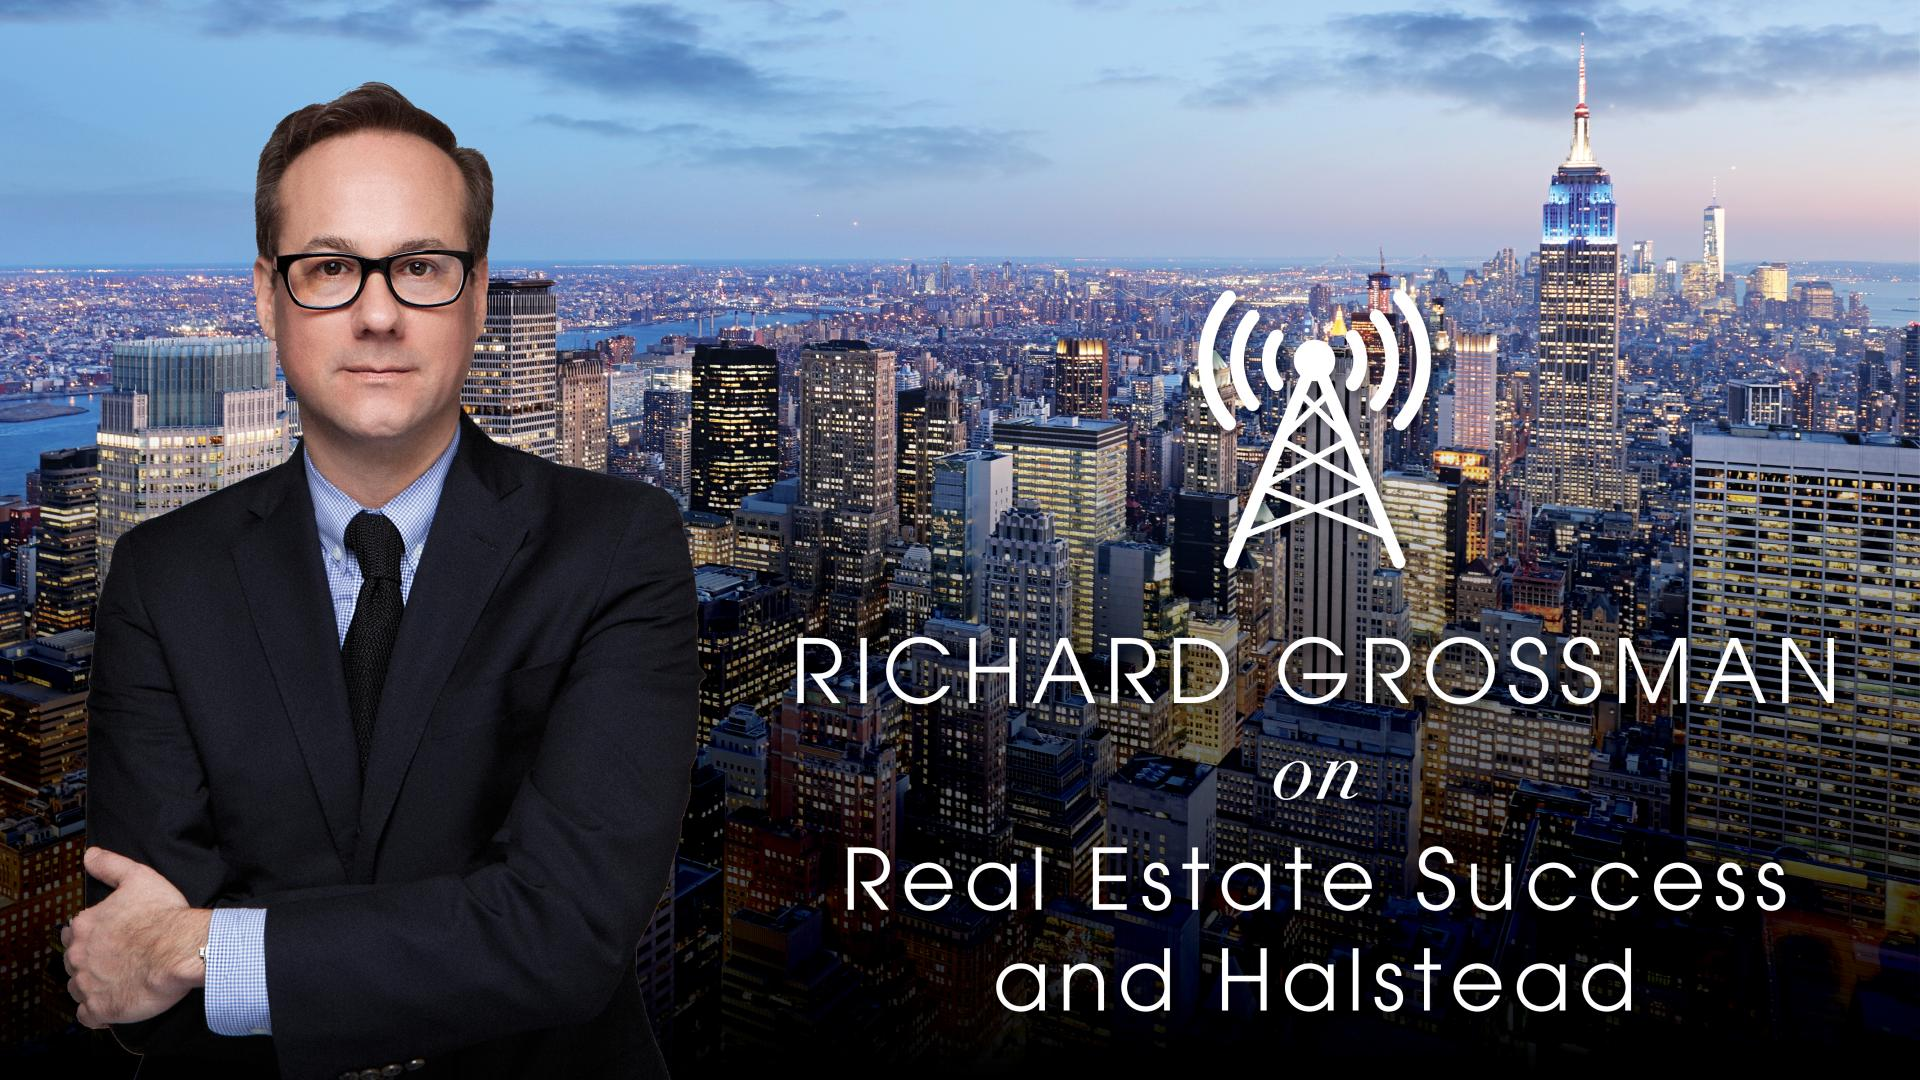 Richard Grossman on Real Estate Success and Halstead